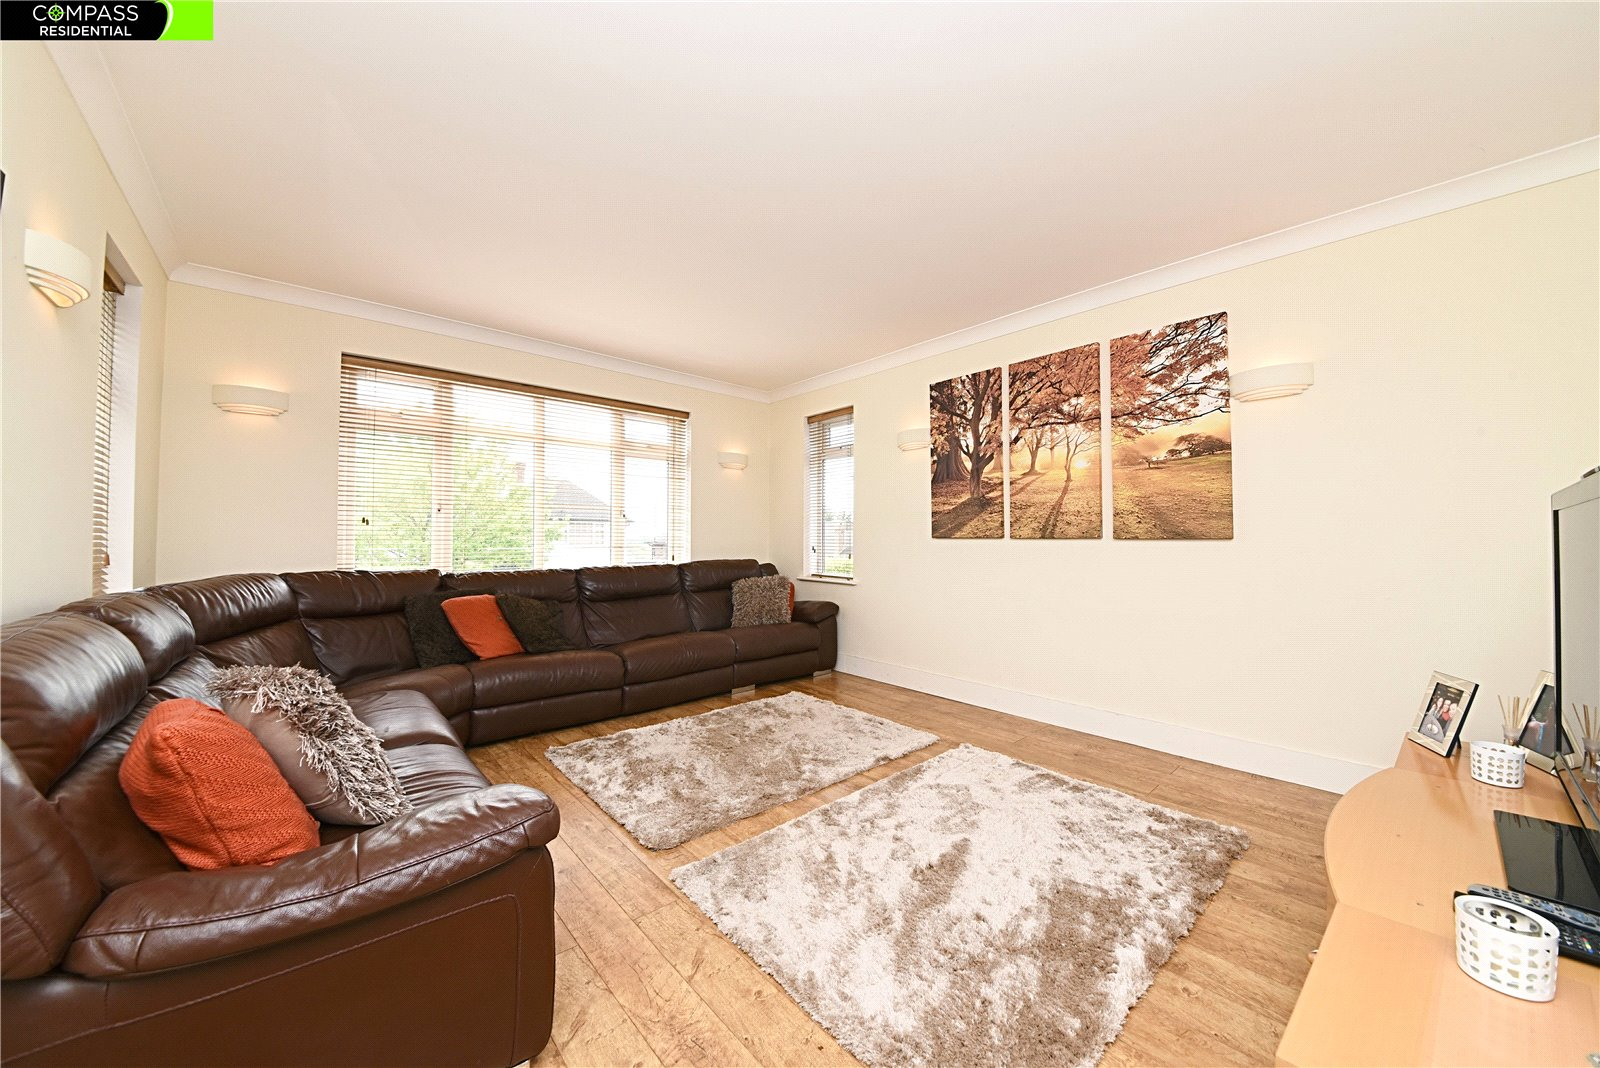 4 bed house for sale in Stanmore, HA7 3AZ  - Property Image 2